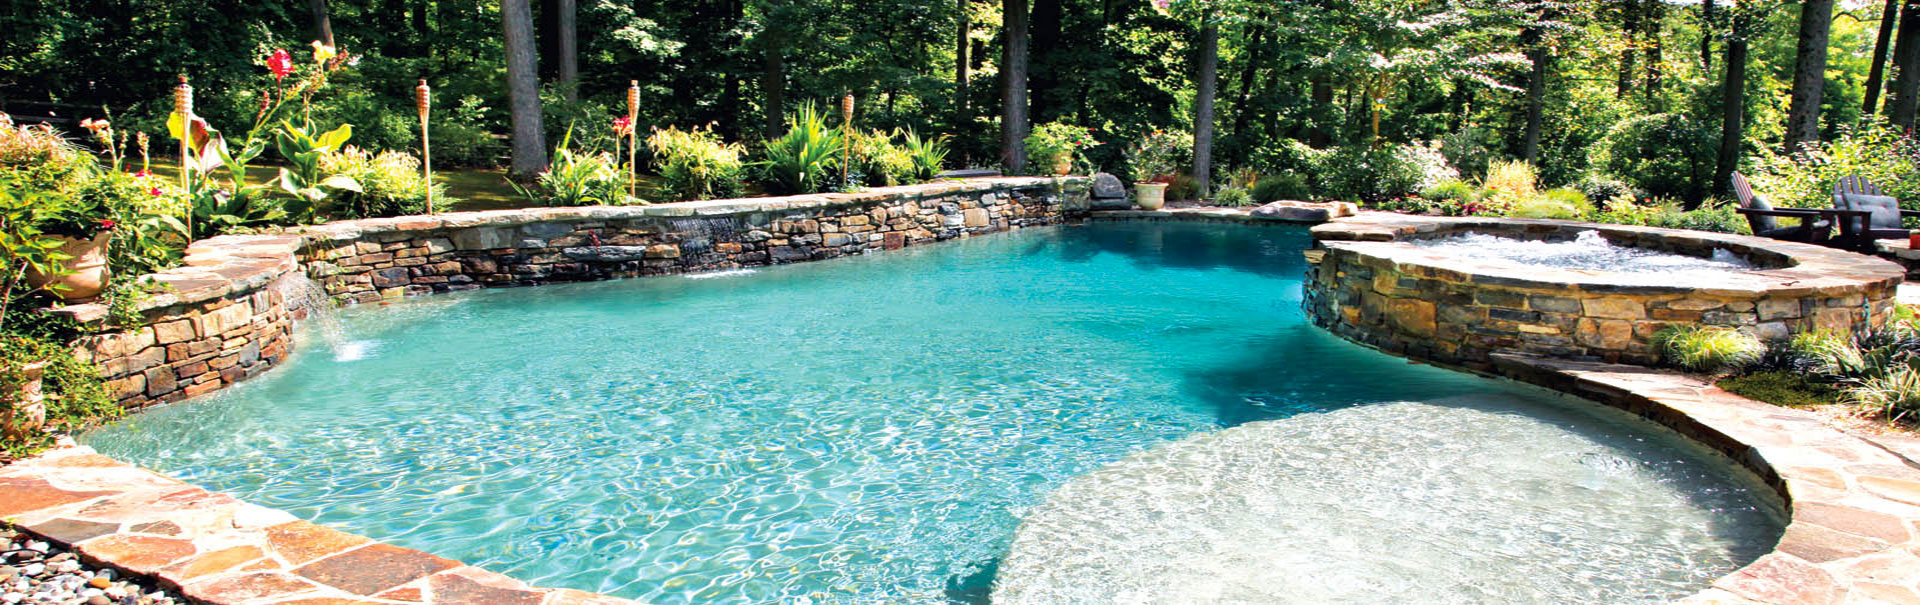 New-Jersey-Swimming-Pool